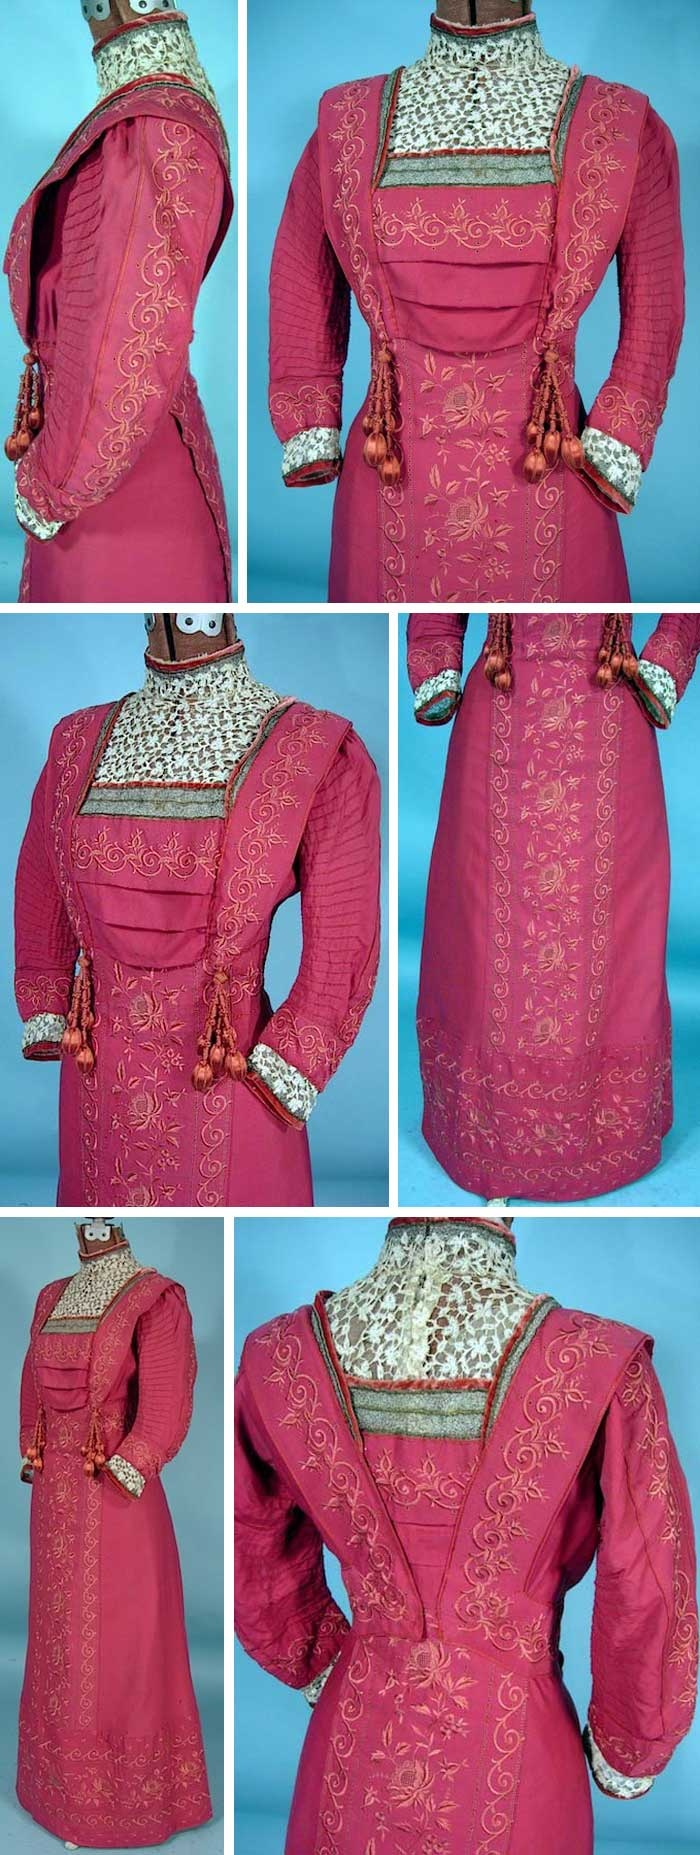 Rose-colored gown, Emma Wagen, Lucerne, ca. 1910. Embroidered with silk slightly lighter than fabric. Lace trim at cuffs, yoke, and neck. Closes with hidden hooks and snaps. AntiqueDress.com